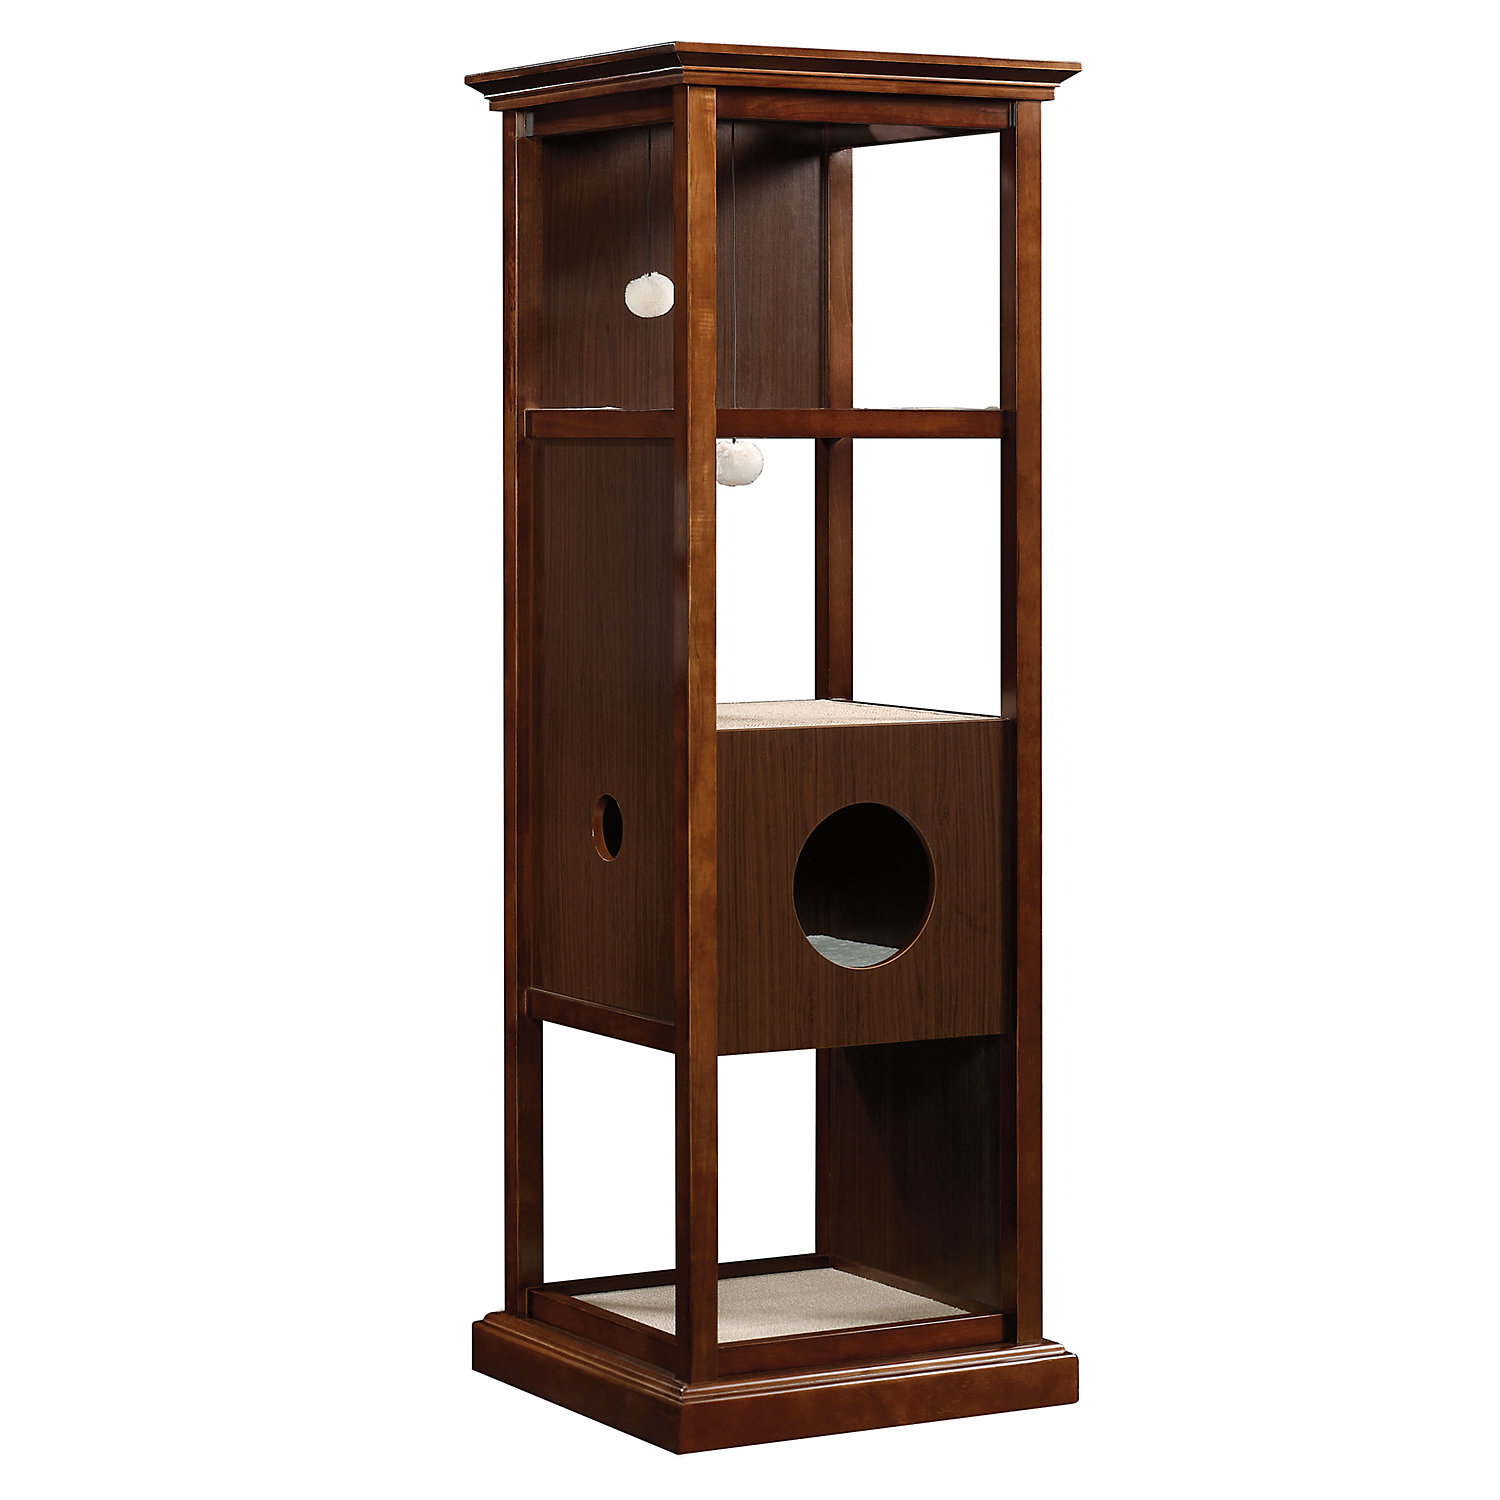 Sauder Traditional Cat Tower 65.25H 89 LB